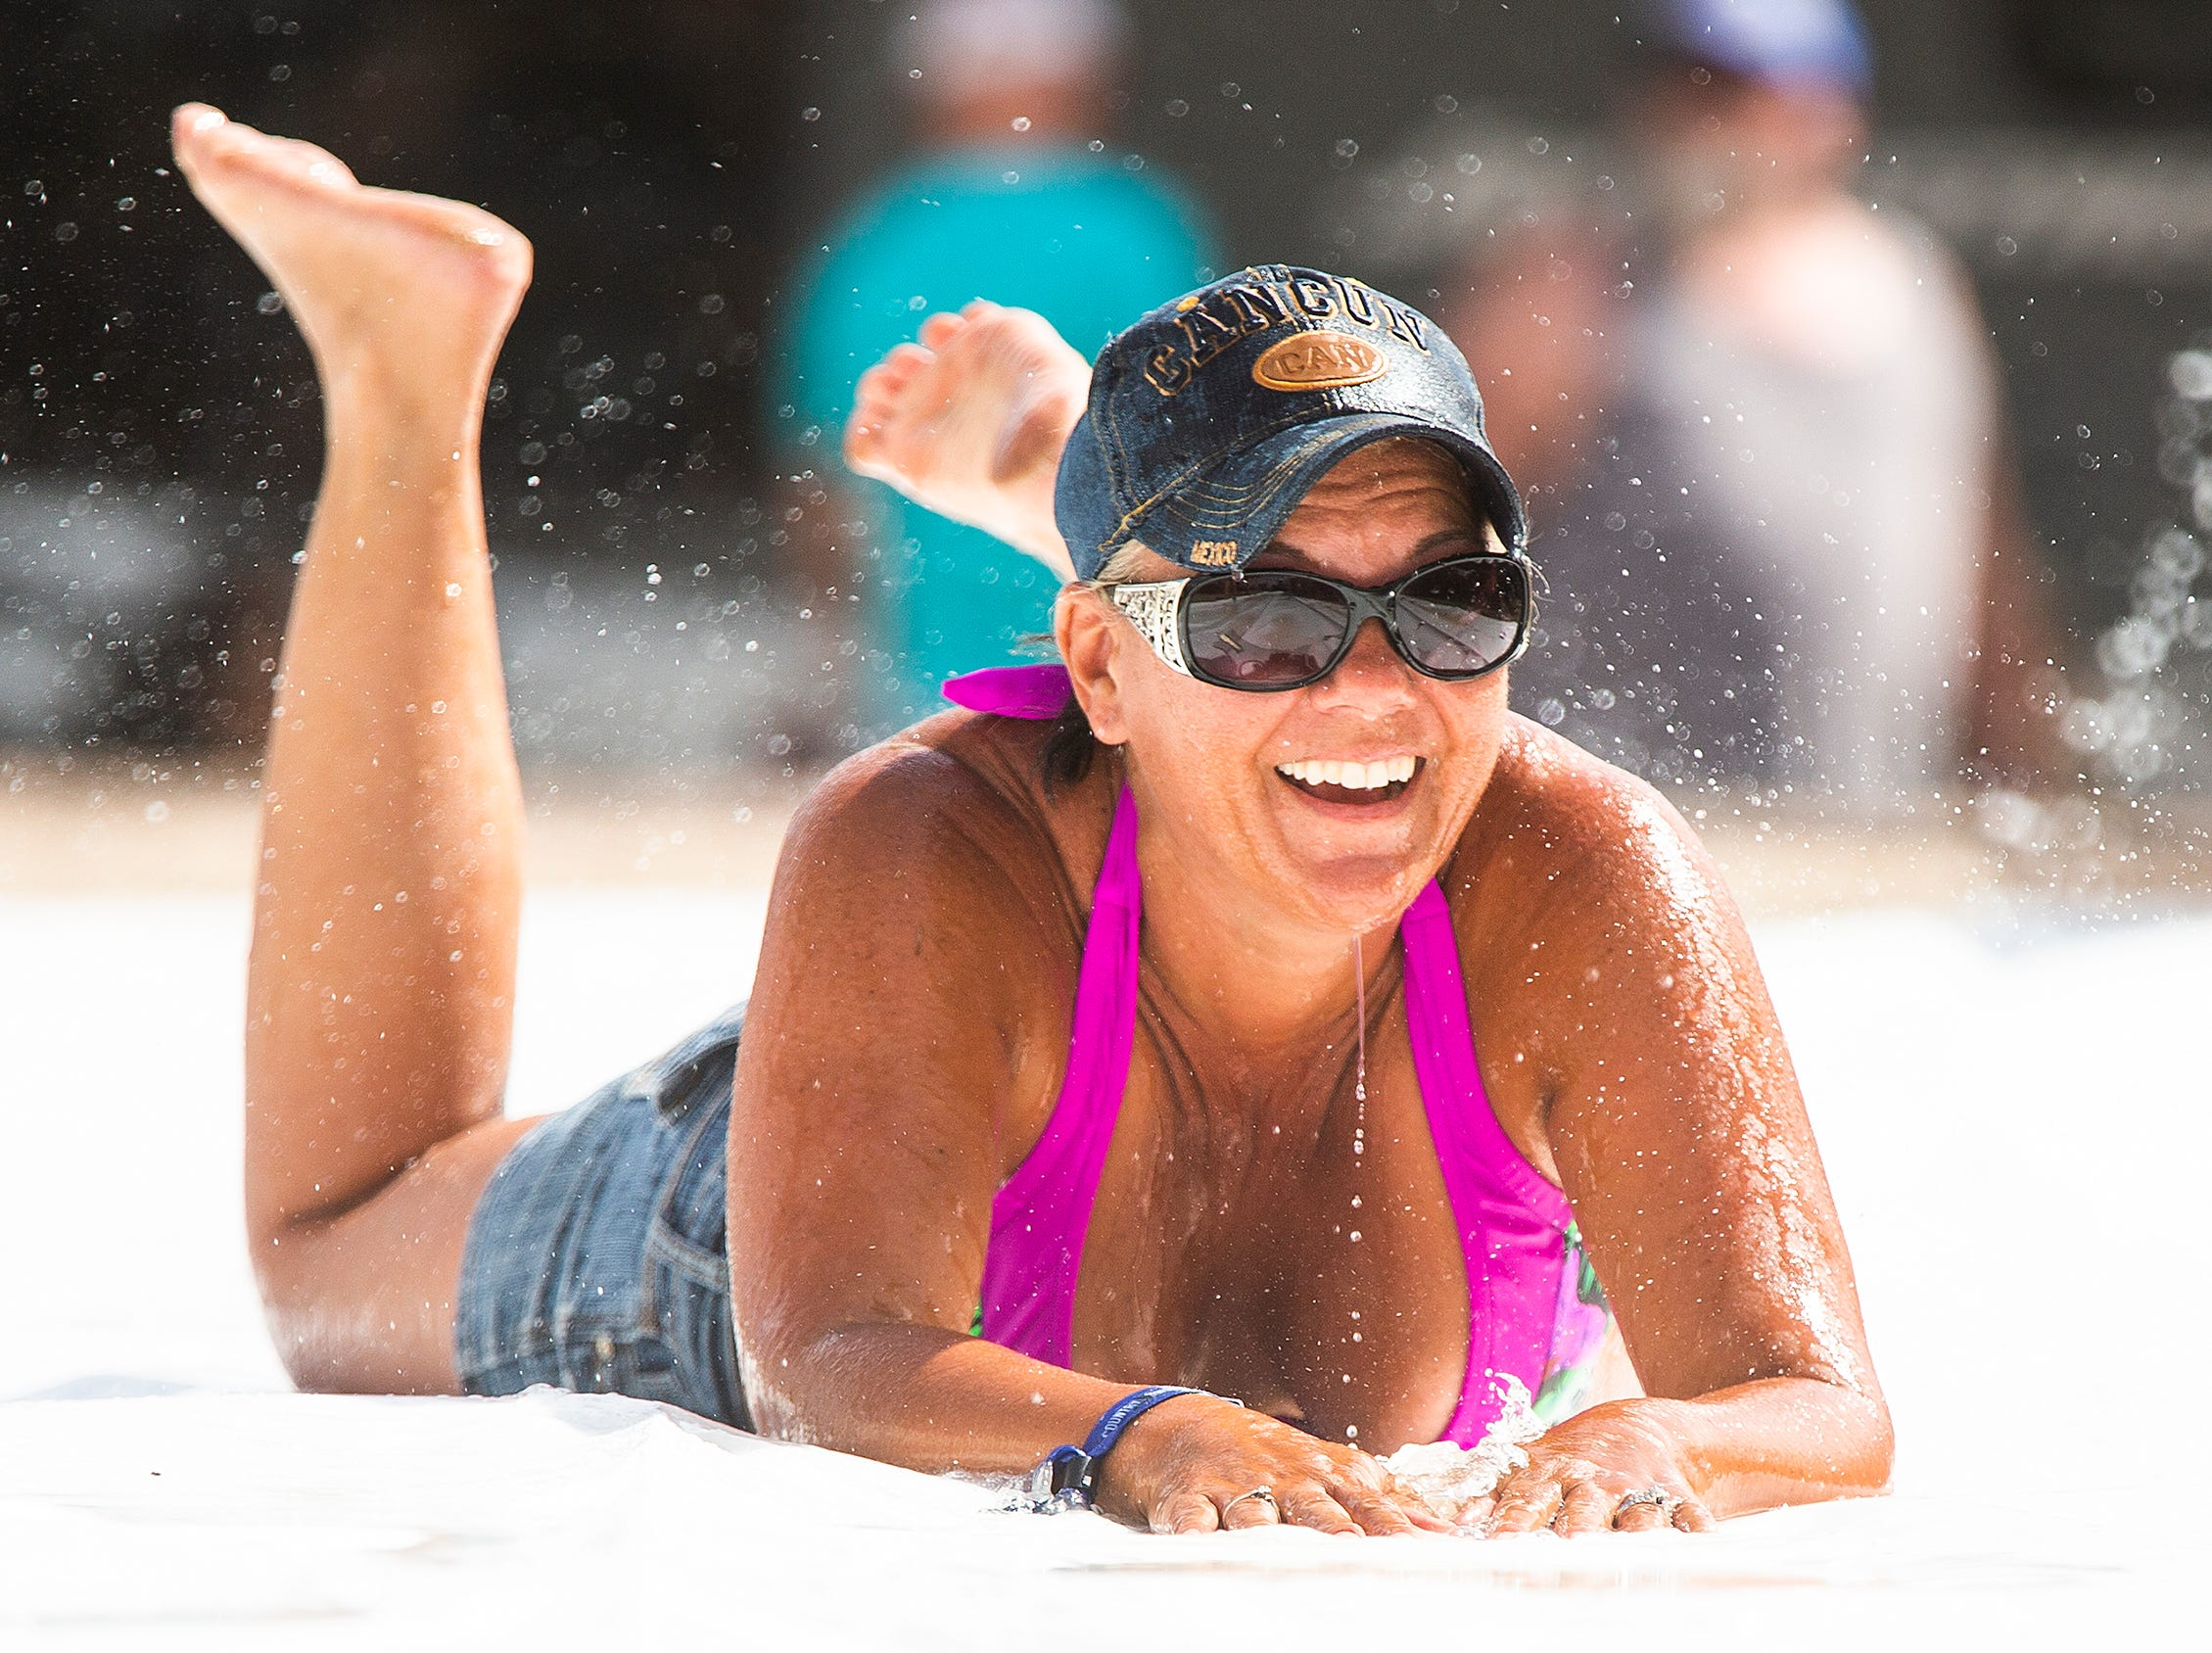 Cindy Packer, 43, Surprise, does the slip and slide at Camp Crazy Coyote at the Country Thunder Arizona 2019 music festival outside Florence, Thursday, April 11, 2019.